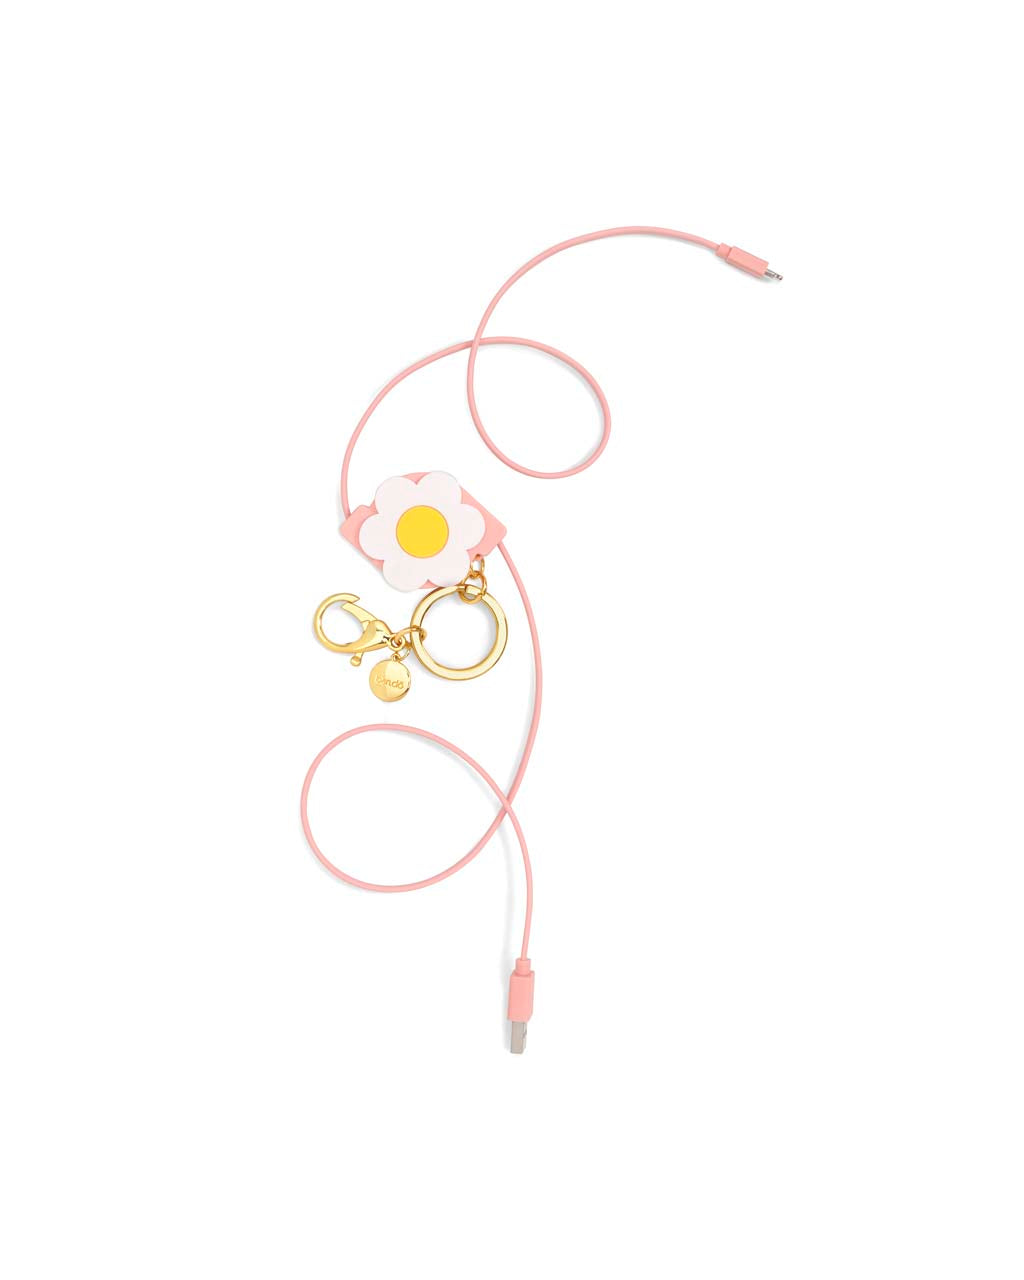 Pink charging cable features ABS plastic 8-pin and USB ends.